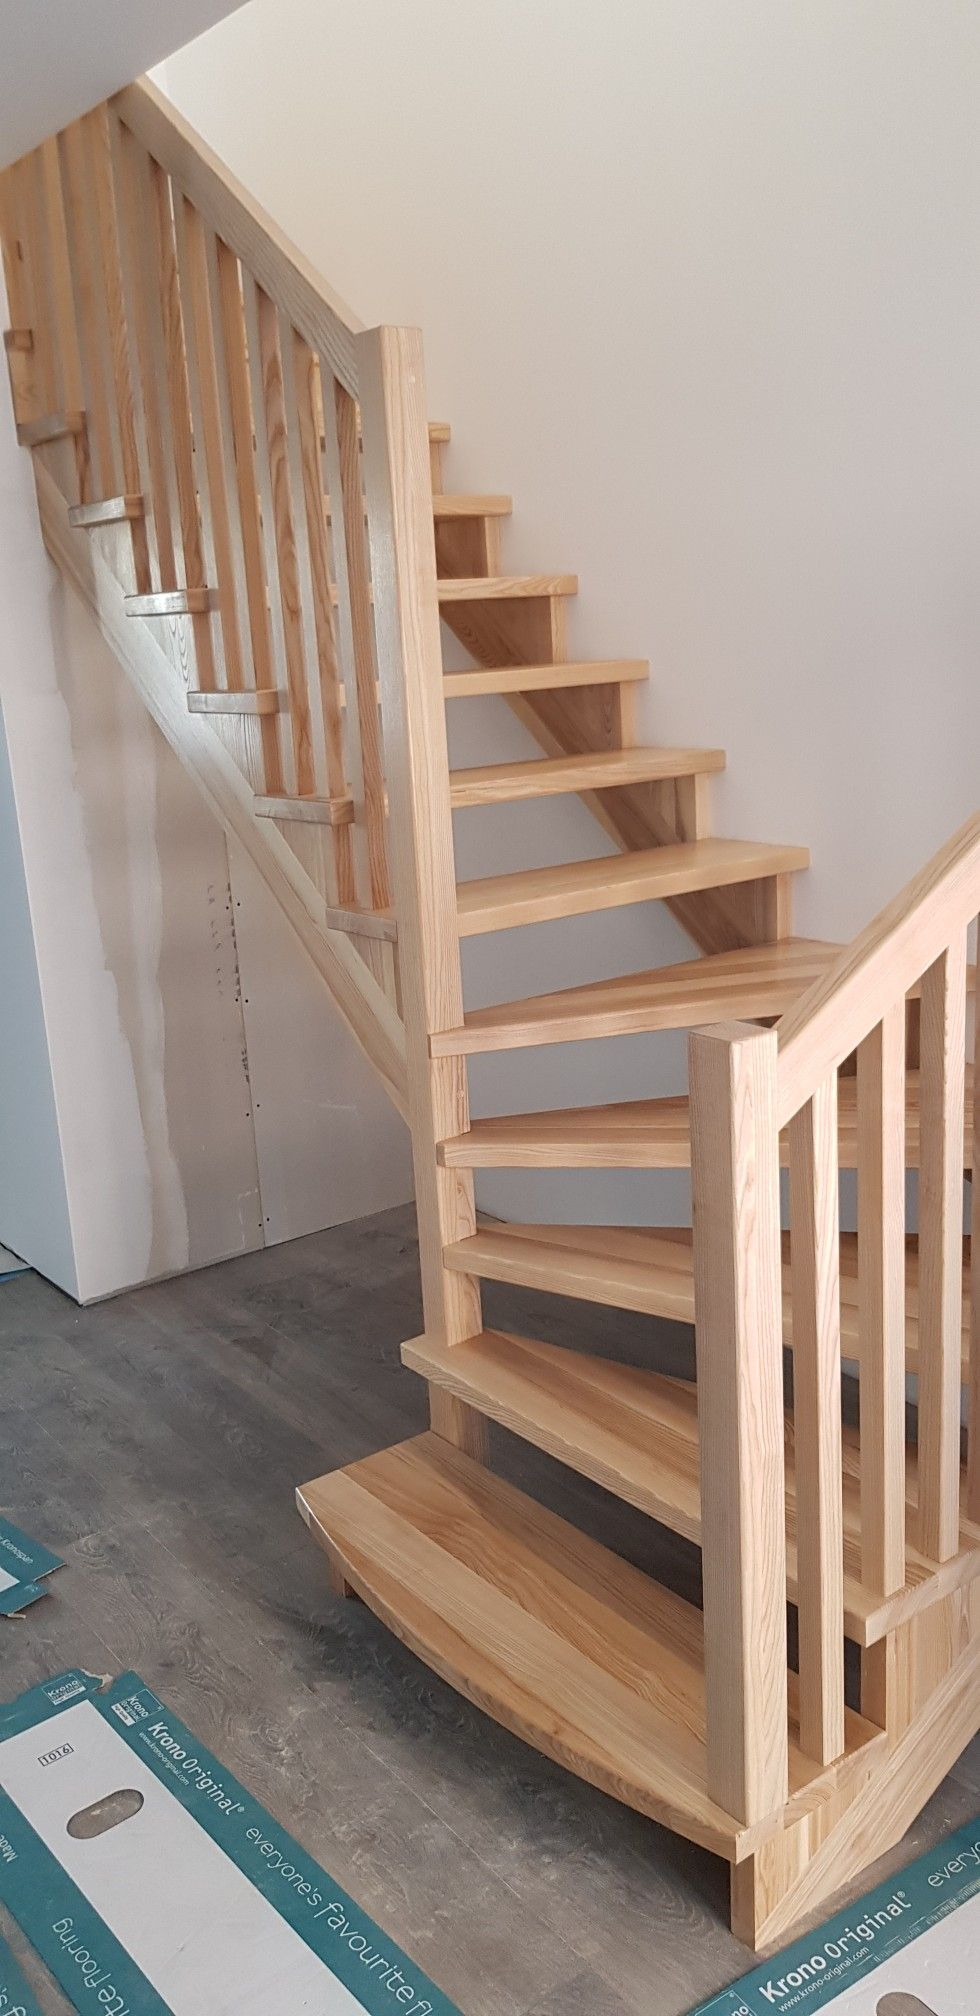 Compact Wooden Staircase For Small Spaces 30 Square Meters Staircase Smallspace Stairideas Wooden Staircases Small Space Staircase Staircase